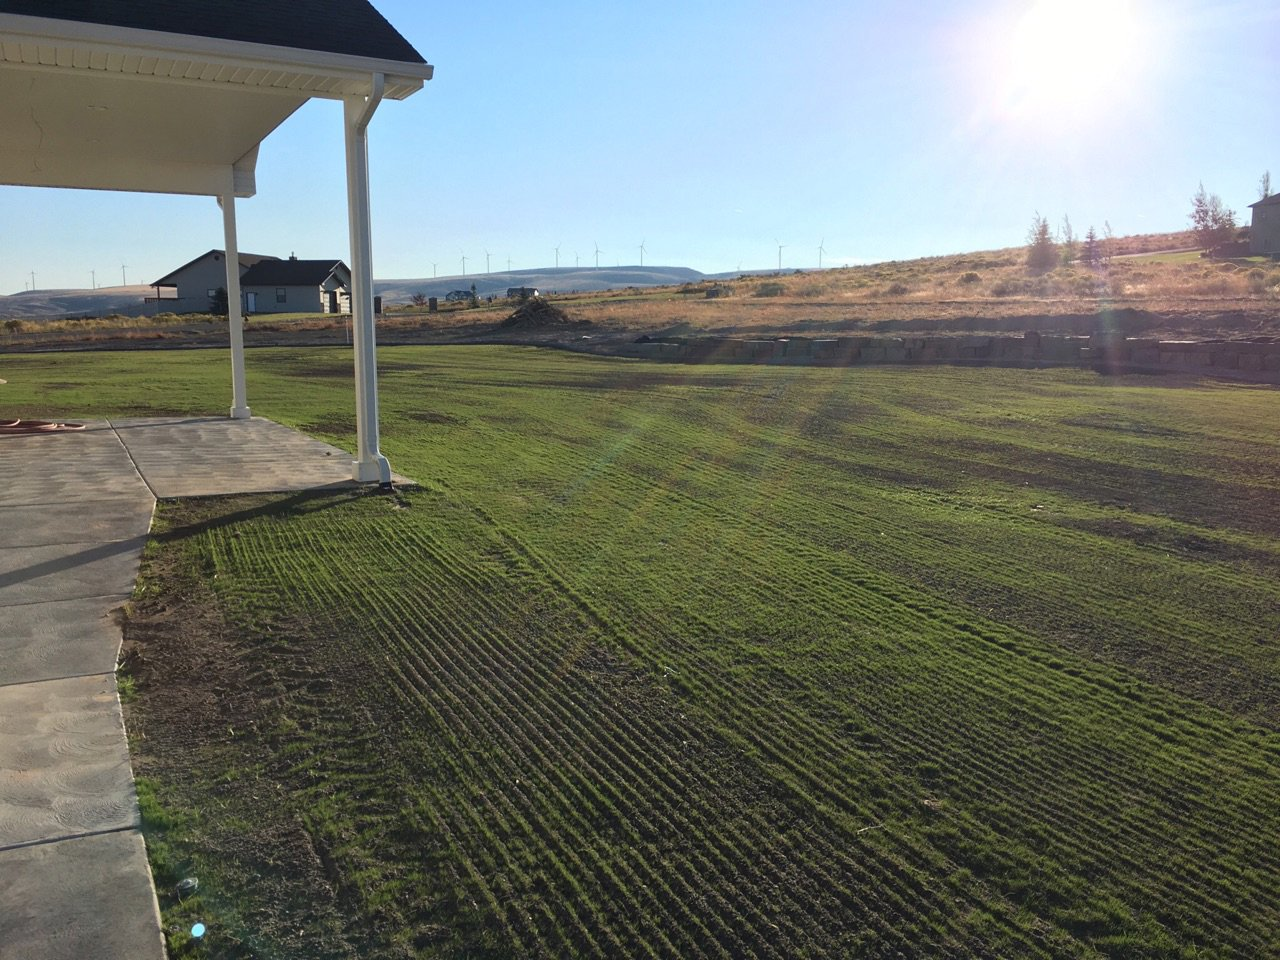 Reseeded Lawn - Grass Reseeding Idaho Falls